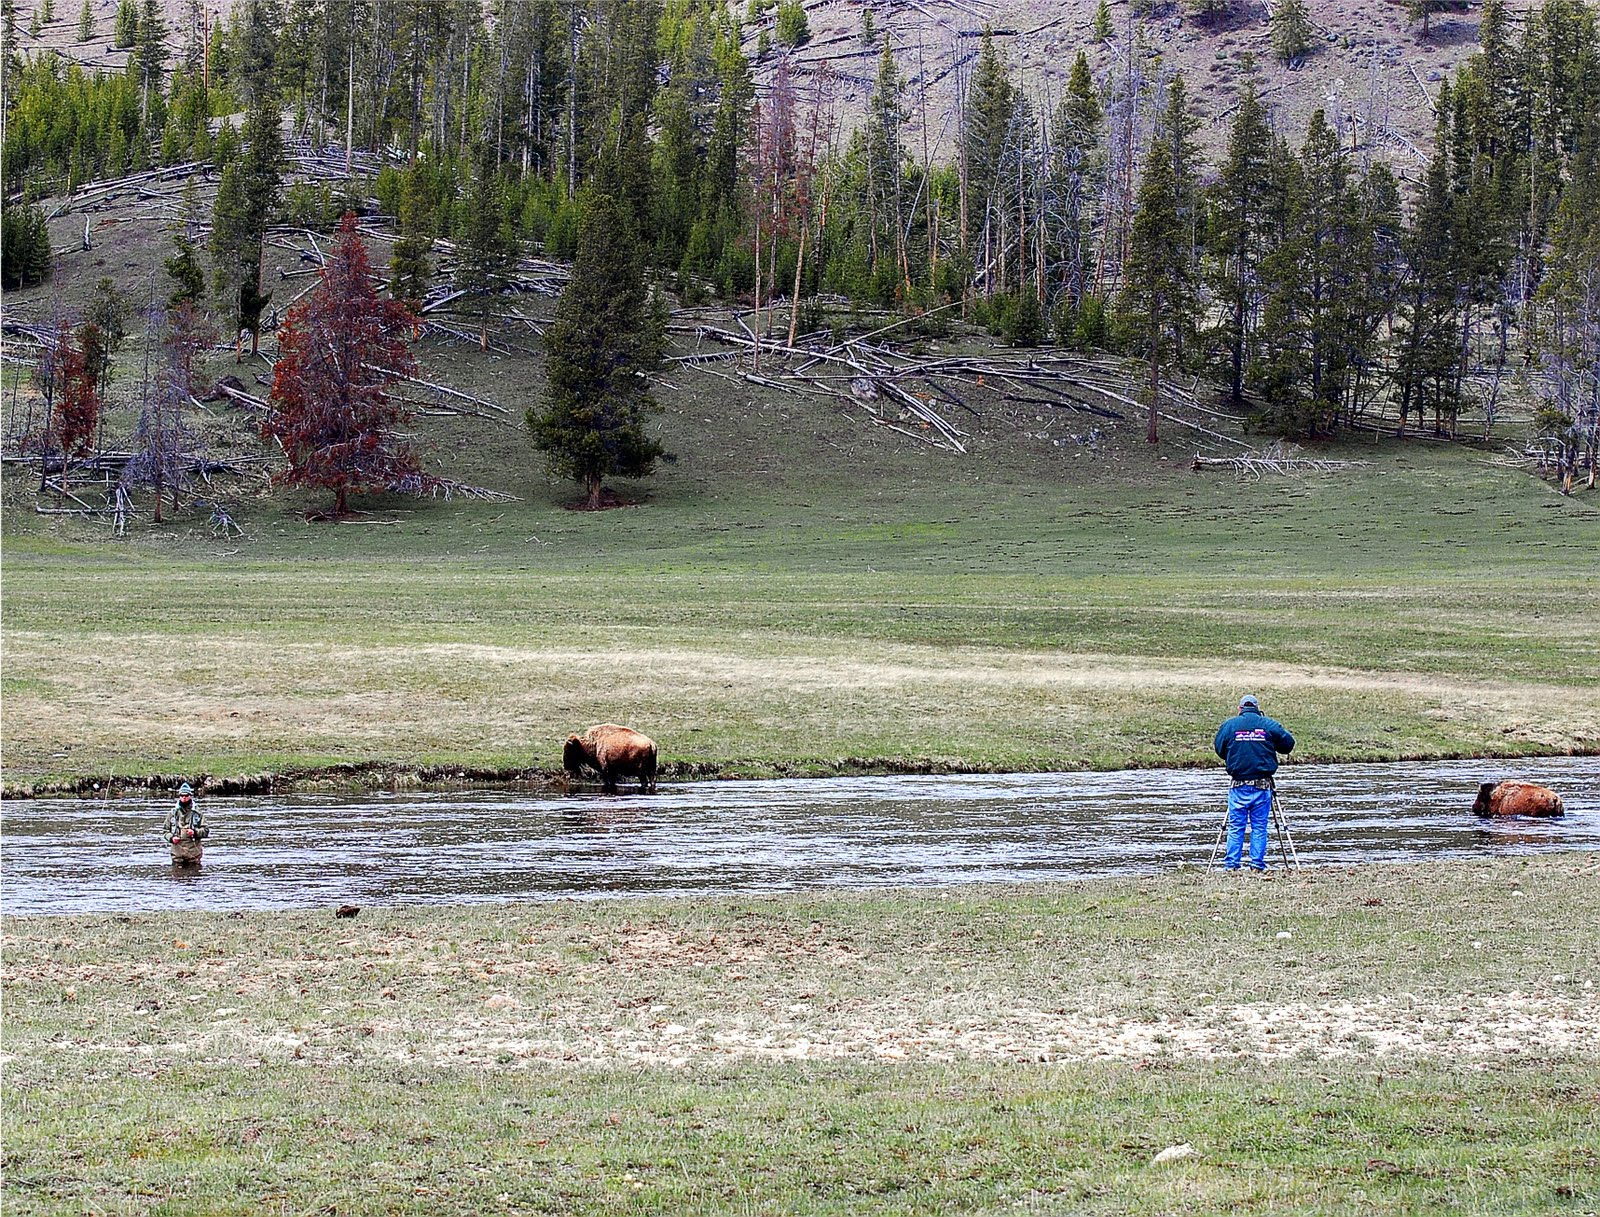 Fly fishing in yellowstone national park simple pleasures for Yellowstone park fishing report